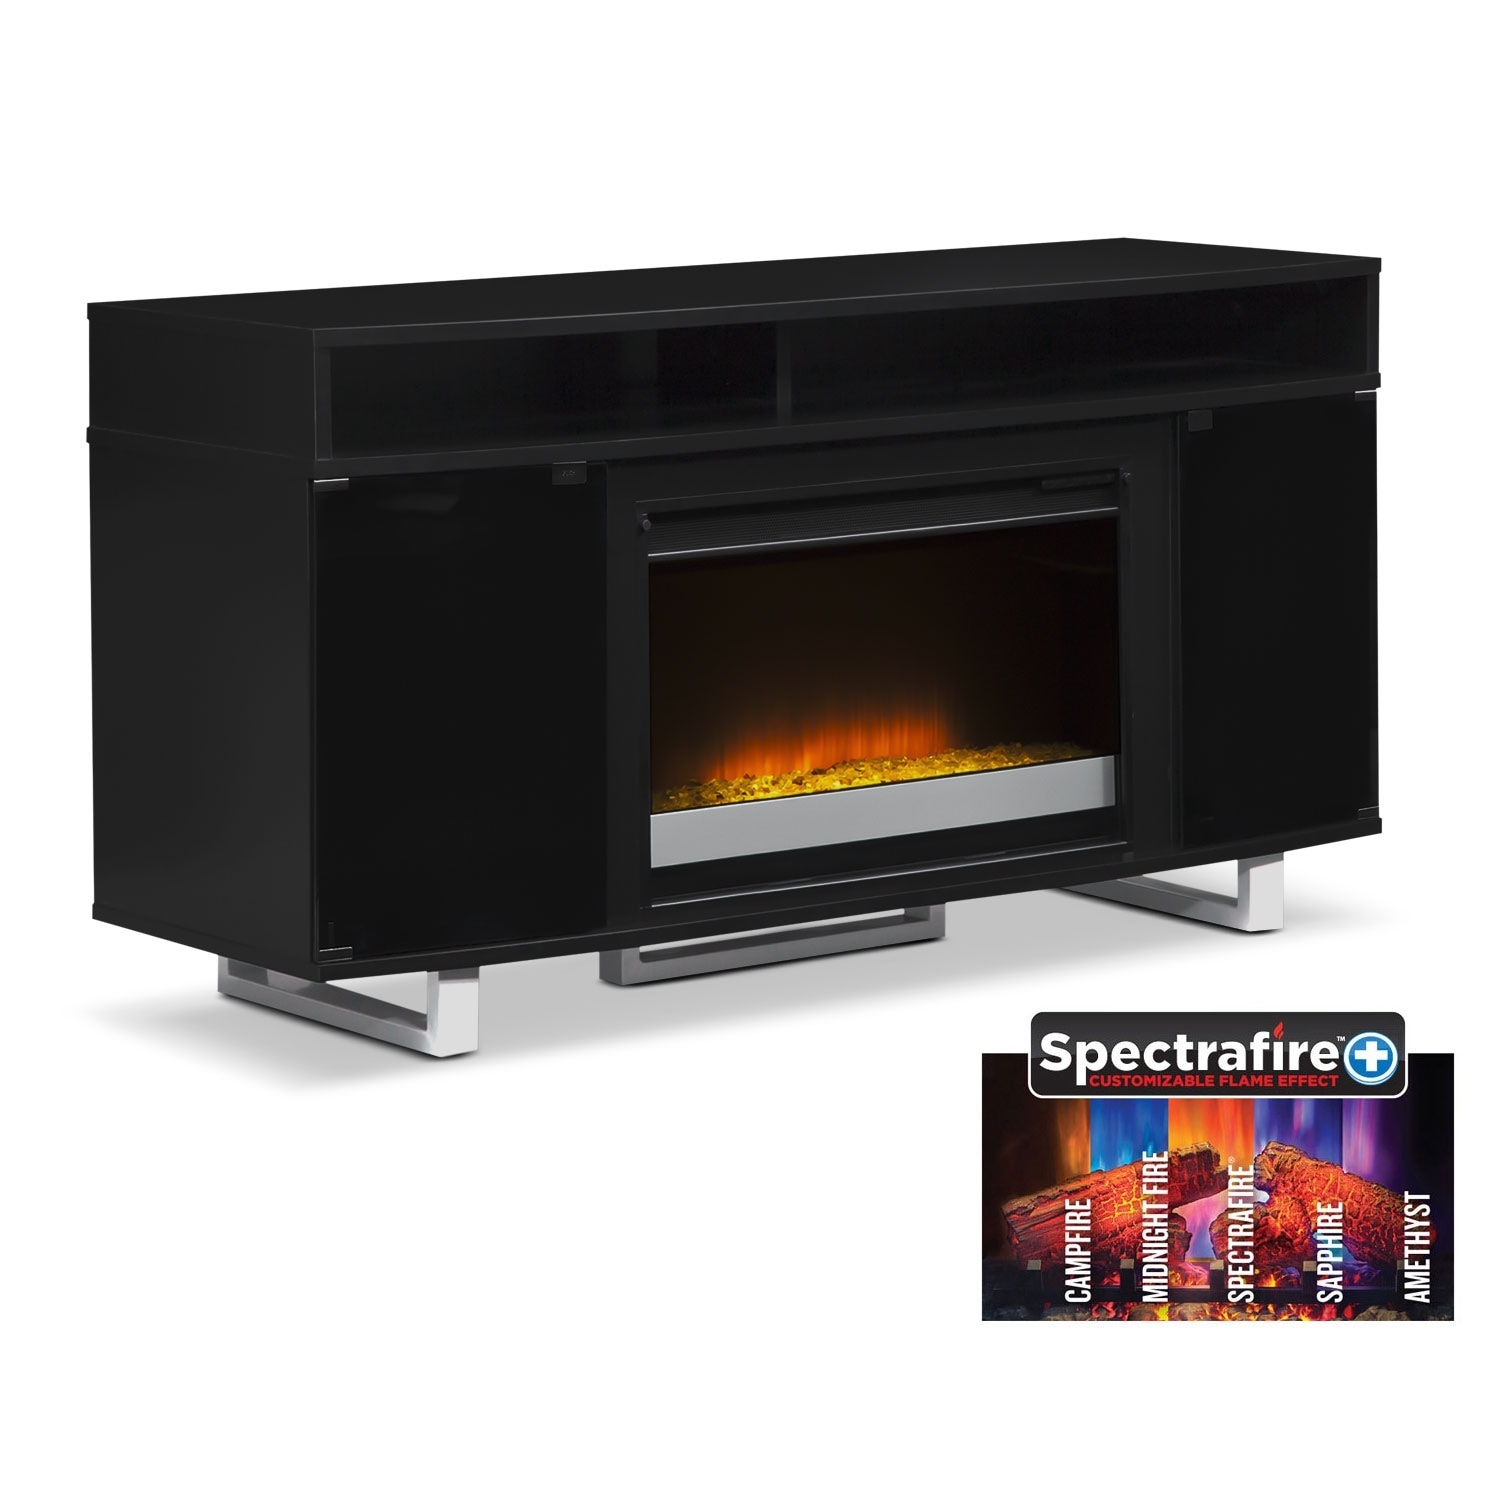 "Pacer 56"" Contemporary Fireplace TV Stand - Black"